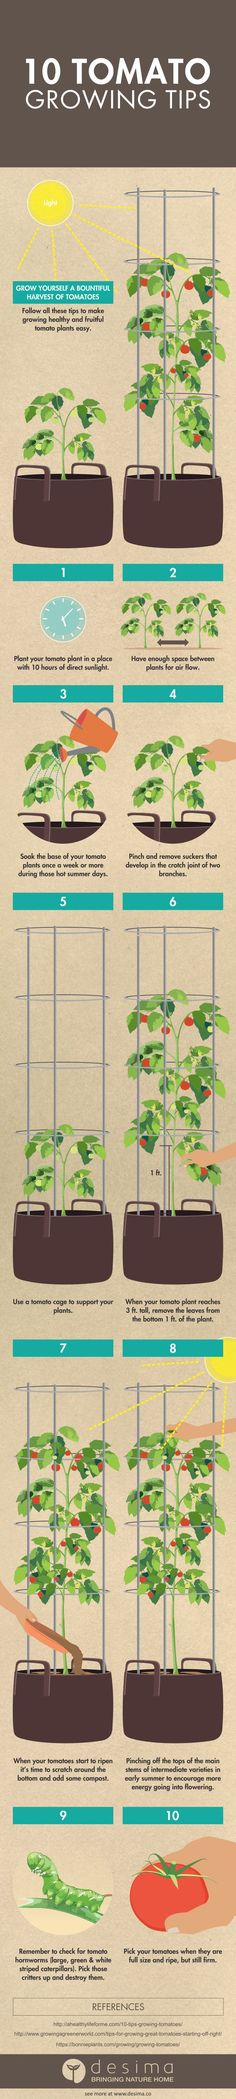 Follow all these tips to make growing healthy and fruitful tomato plants  easy.    1. Plant your tomato plant in a place with 10 hours of direct sunlight.  2. Have enough space between plants for air flow.  3. Soak the base of your tomato plants once a week or more during those hot  summer days.  4. Pinch and remove suckers that develop in the crotch joint of two  branches.  5. Use a tomato cage to support your plants.  6. When your tomato plant reaches 3 ft. tall, remove the leaves from the…